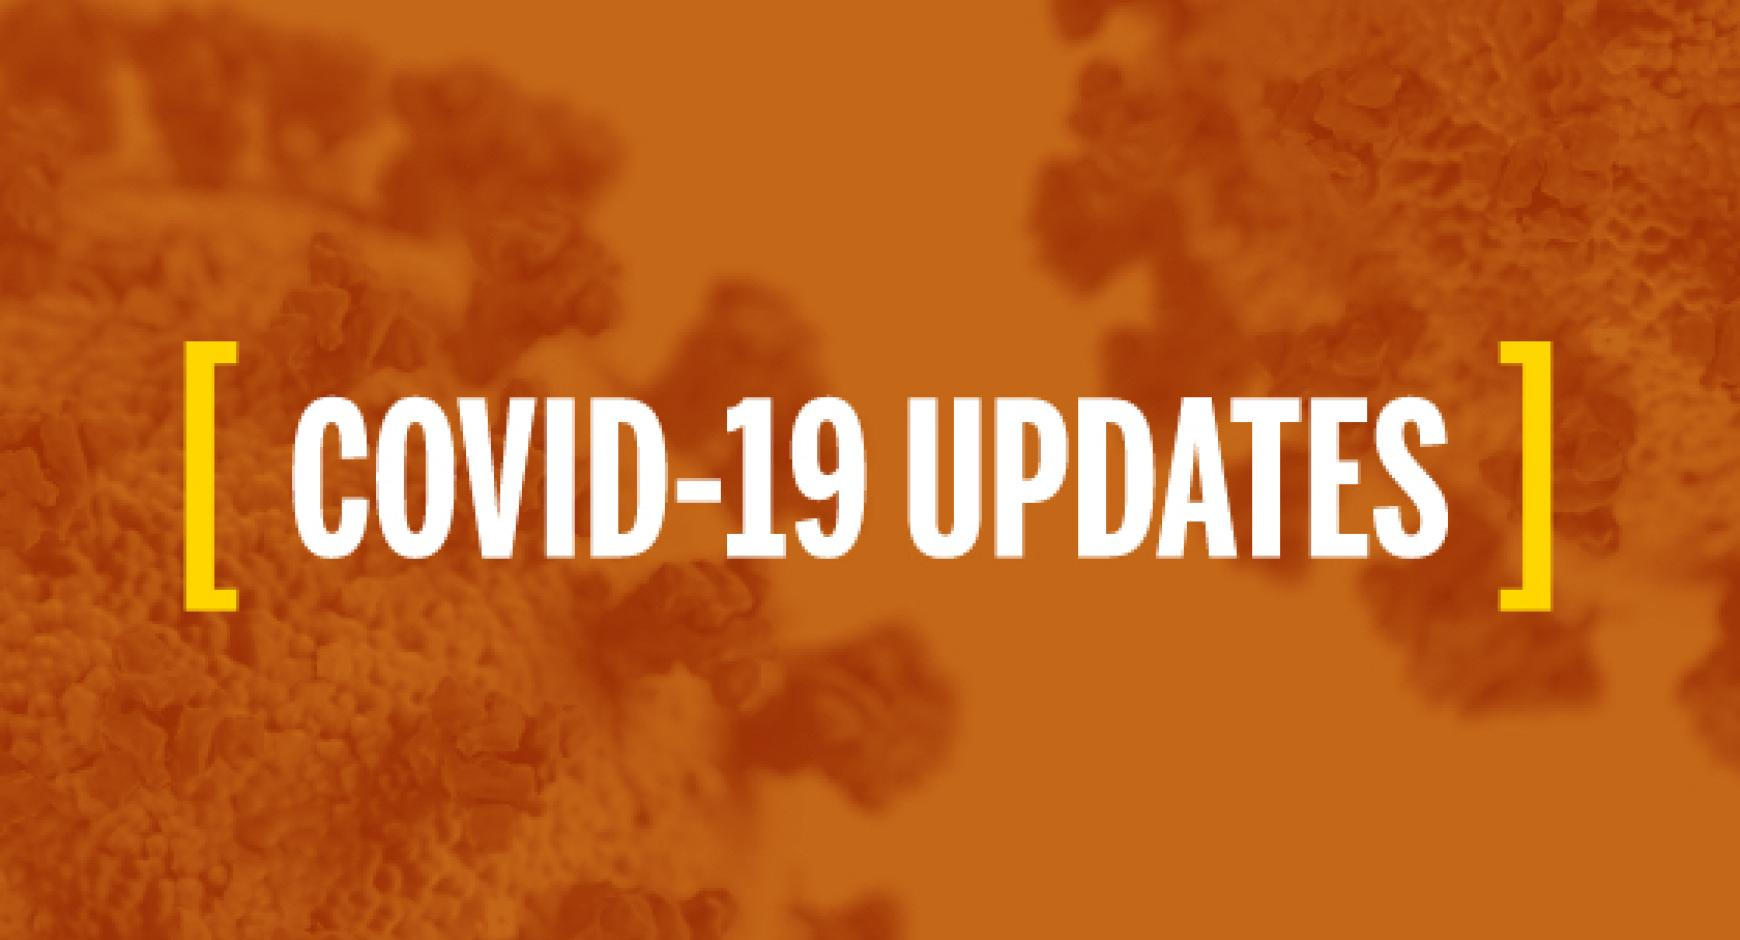 COVID-19 coronavirus updates - web graphic 560x340